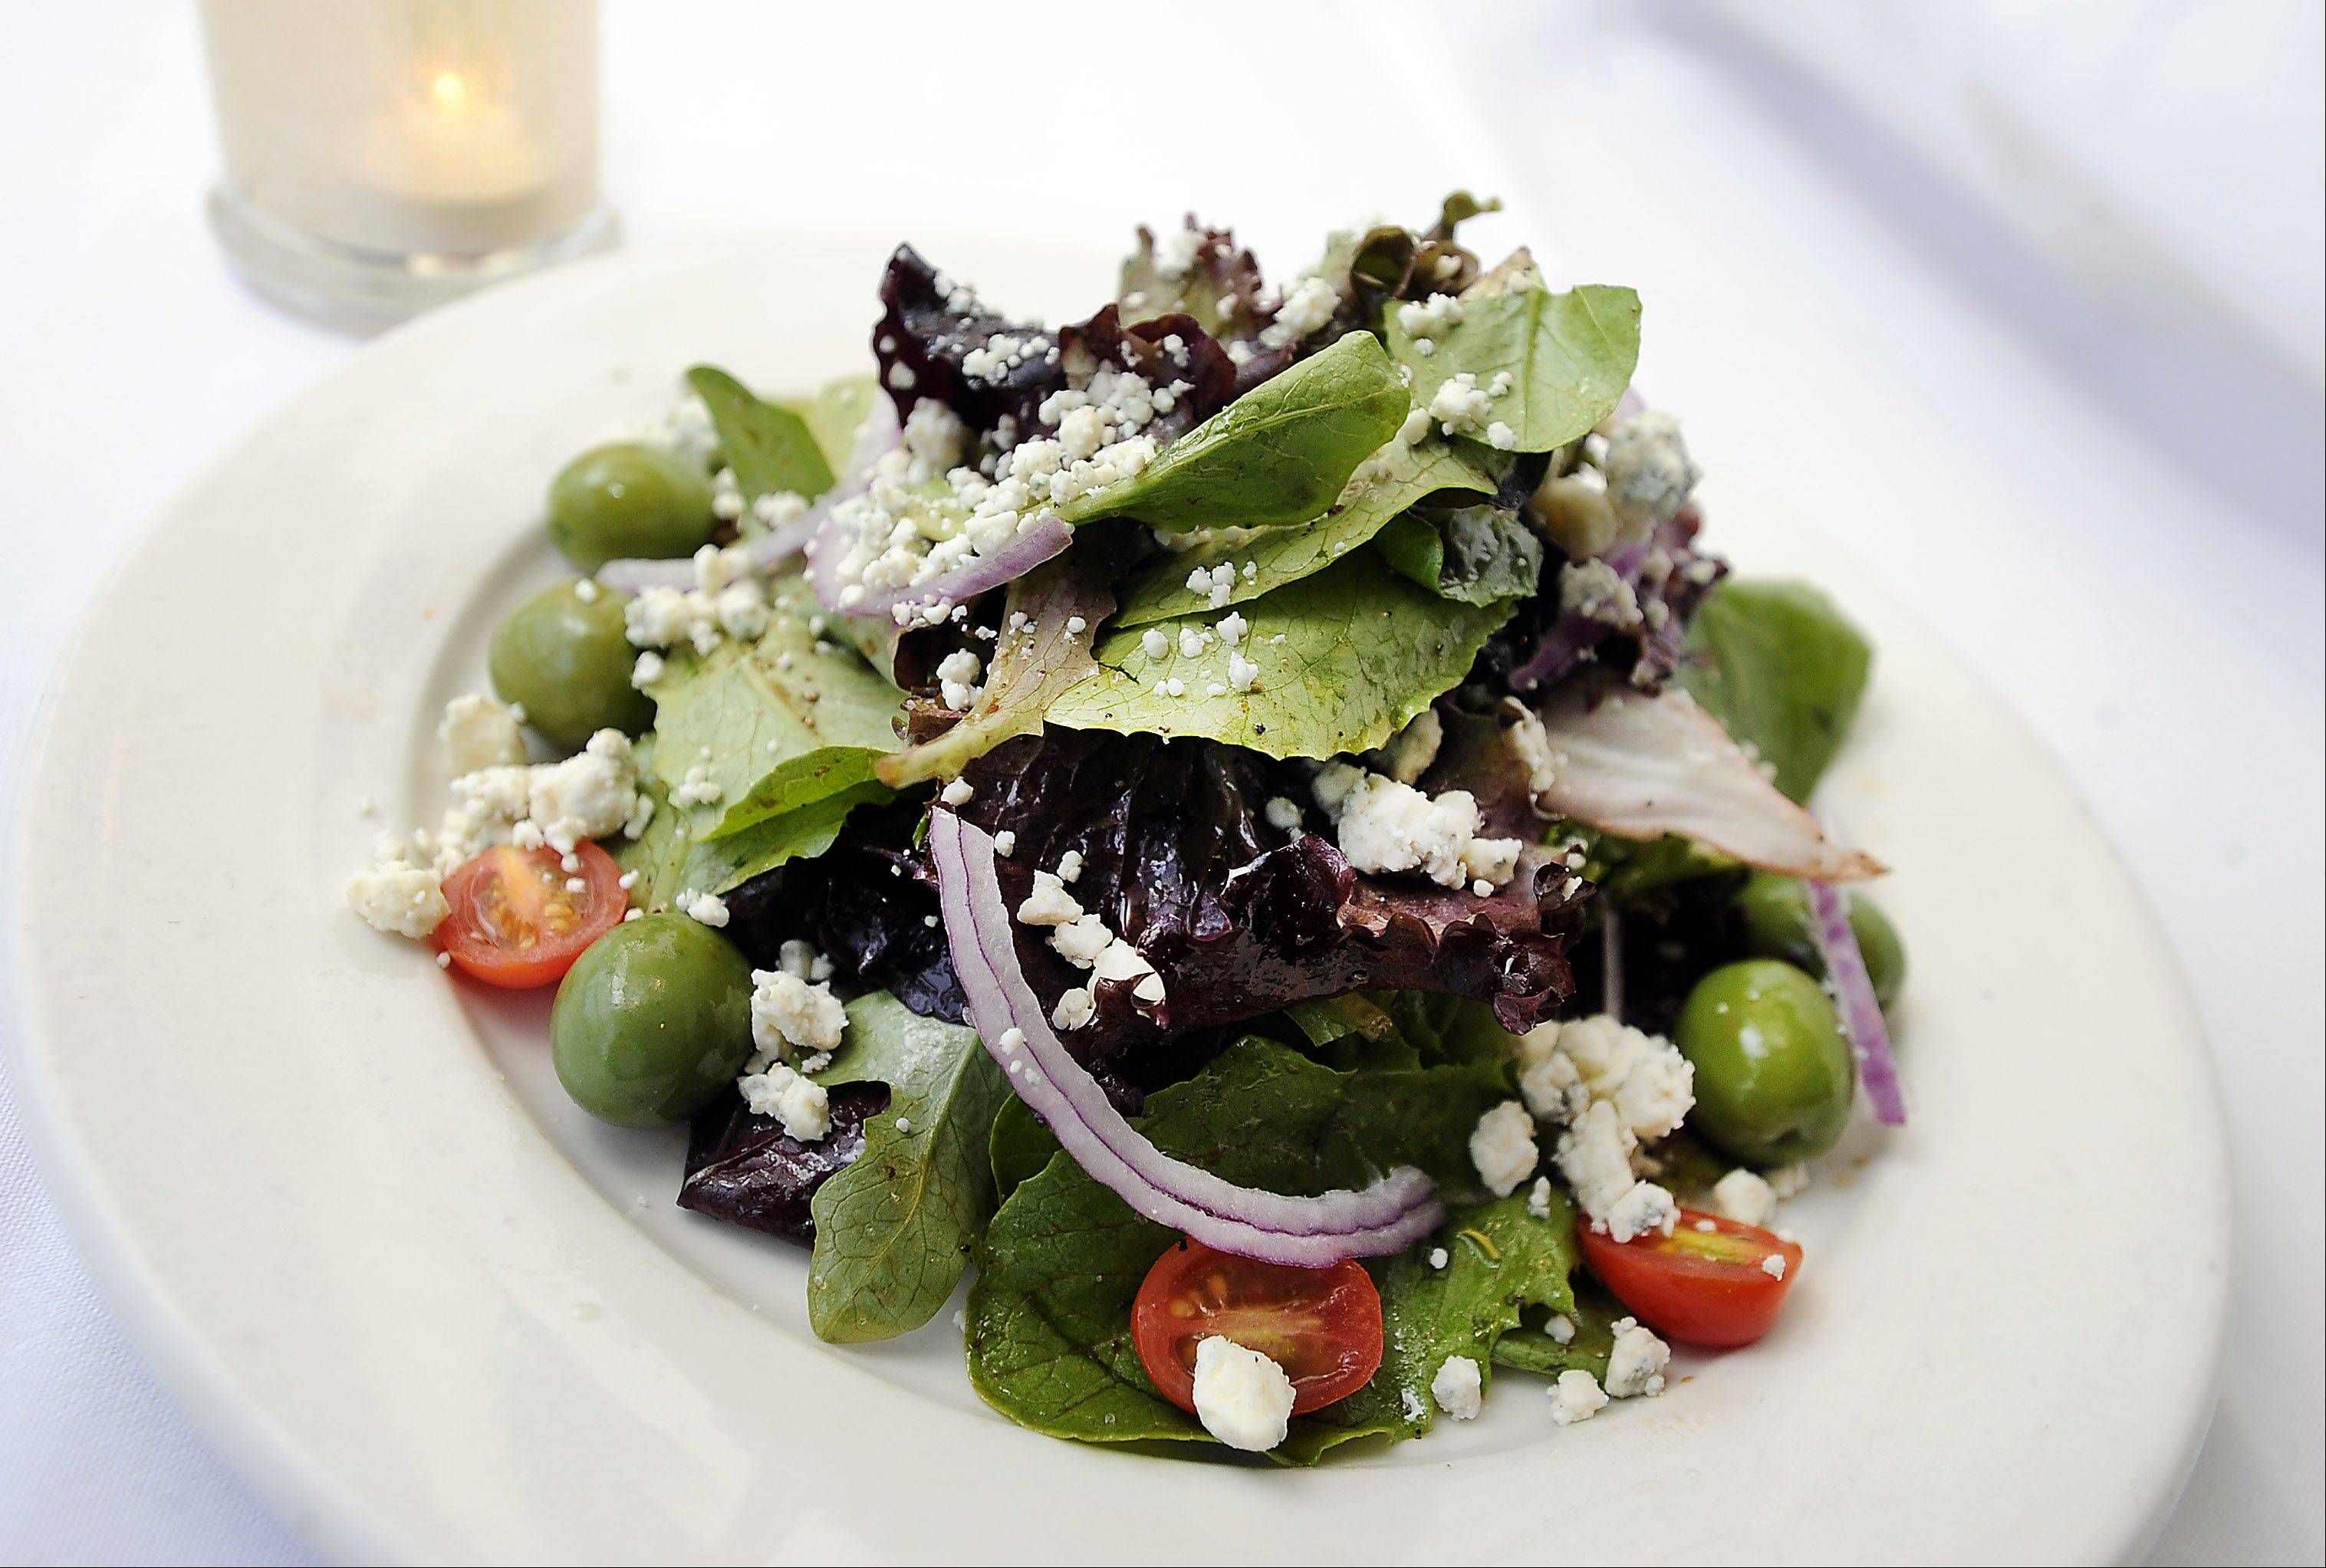 Green olives accent the signature salad at Enzo & Lucia Ristorante and Cafe in Long Grove.